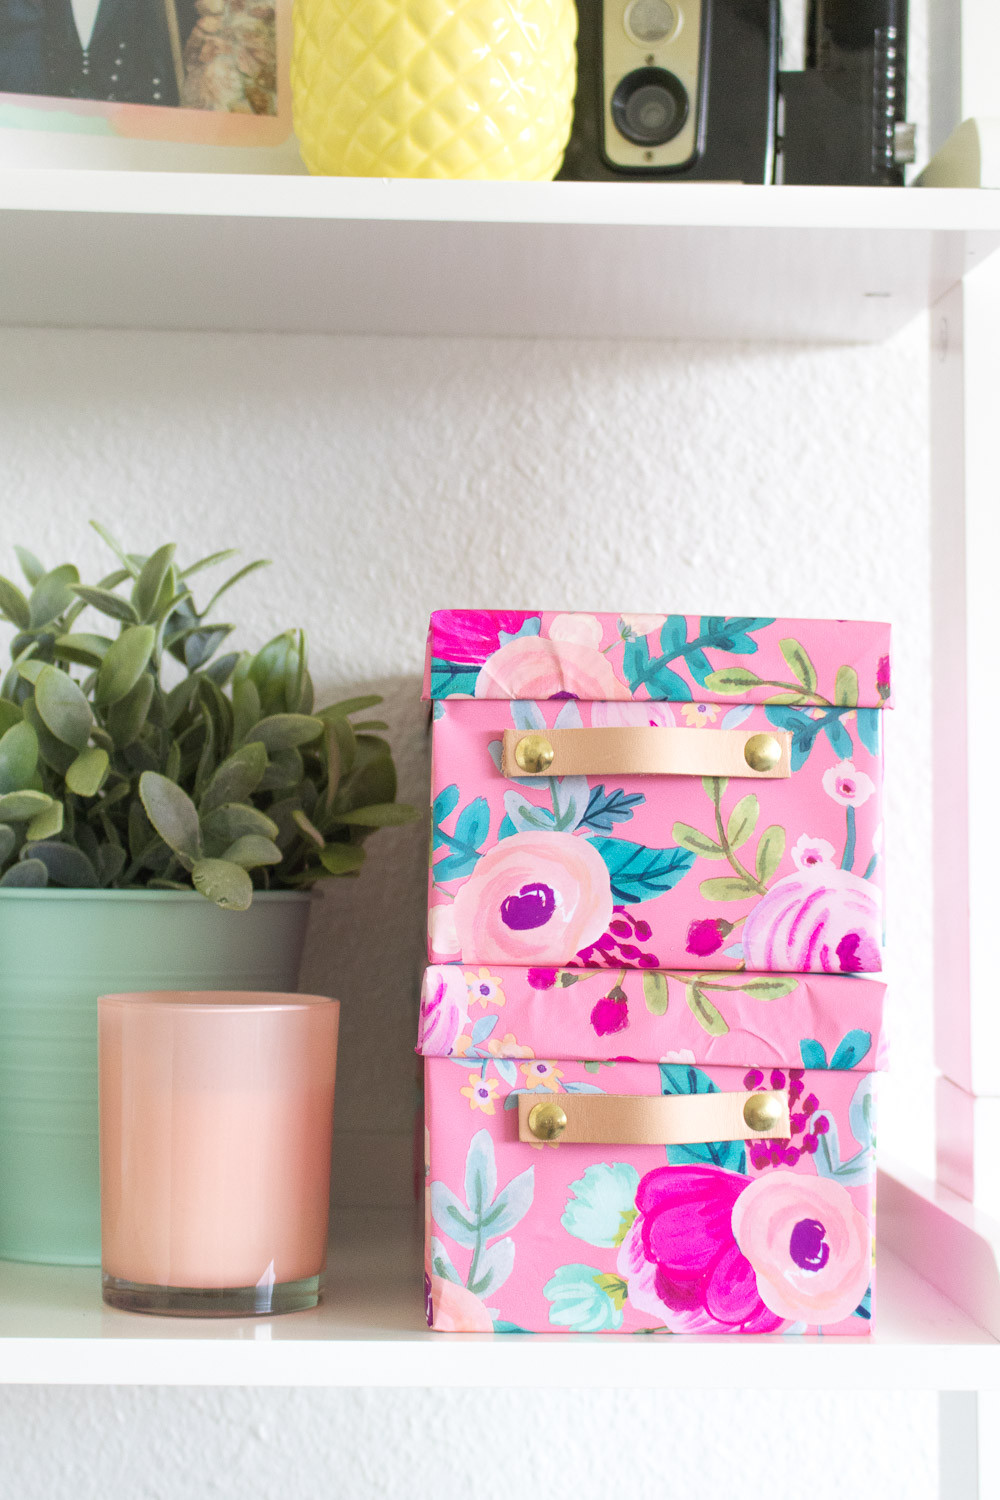 Best ideas about DIY Wrapping Paper . Save or Pin DIY Wrapping Paper Covered Boxes with Leather Handles Now.